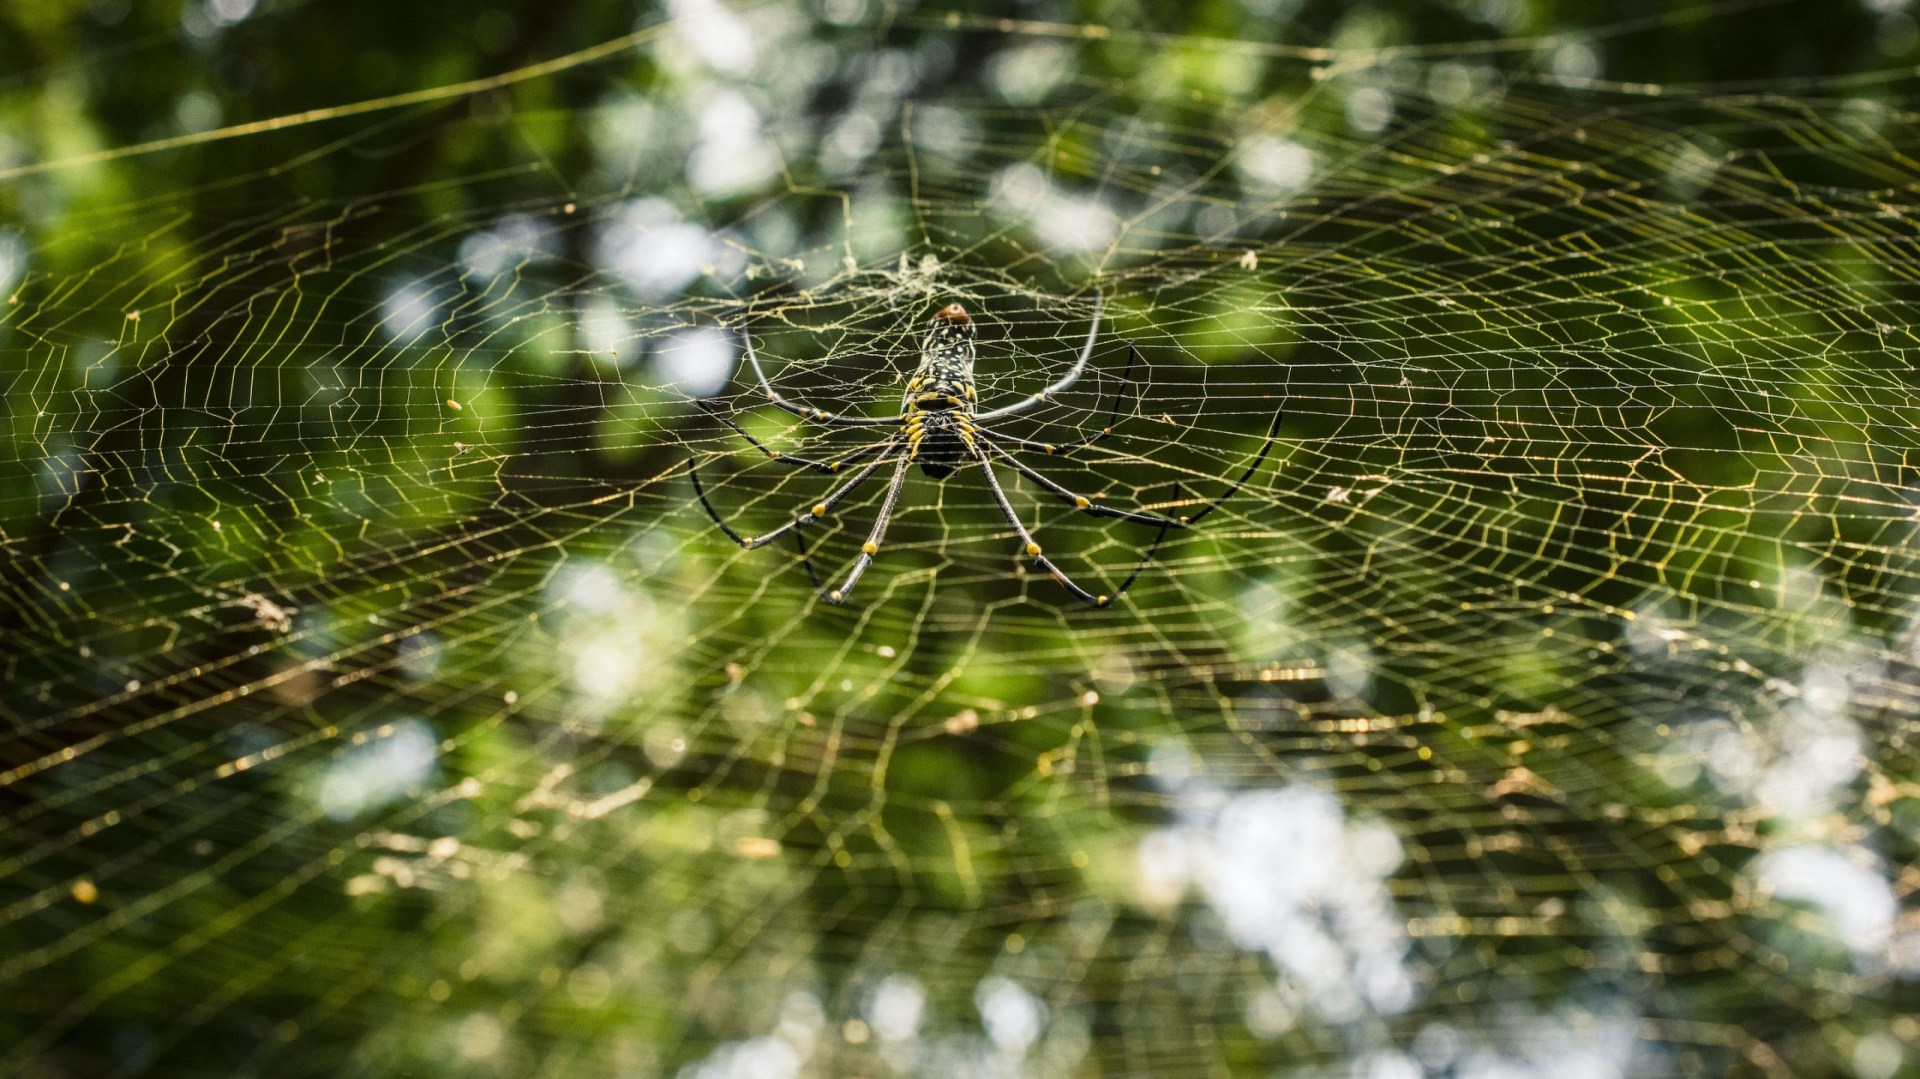 Web Design: An Orb-weaver's Sticky Toxic Lair